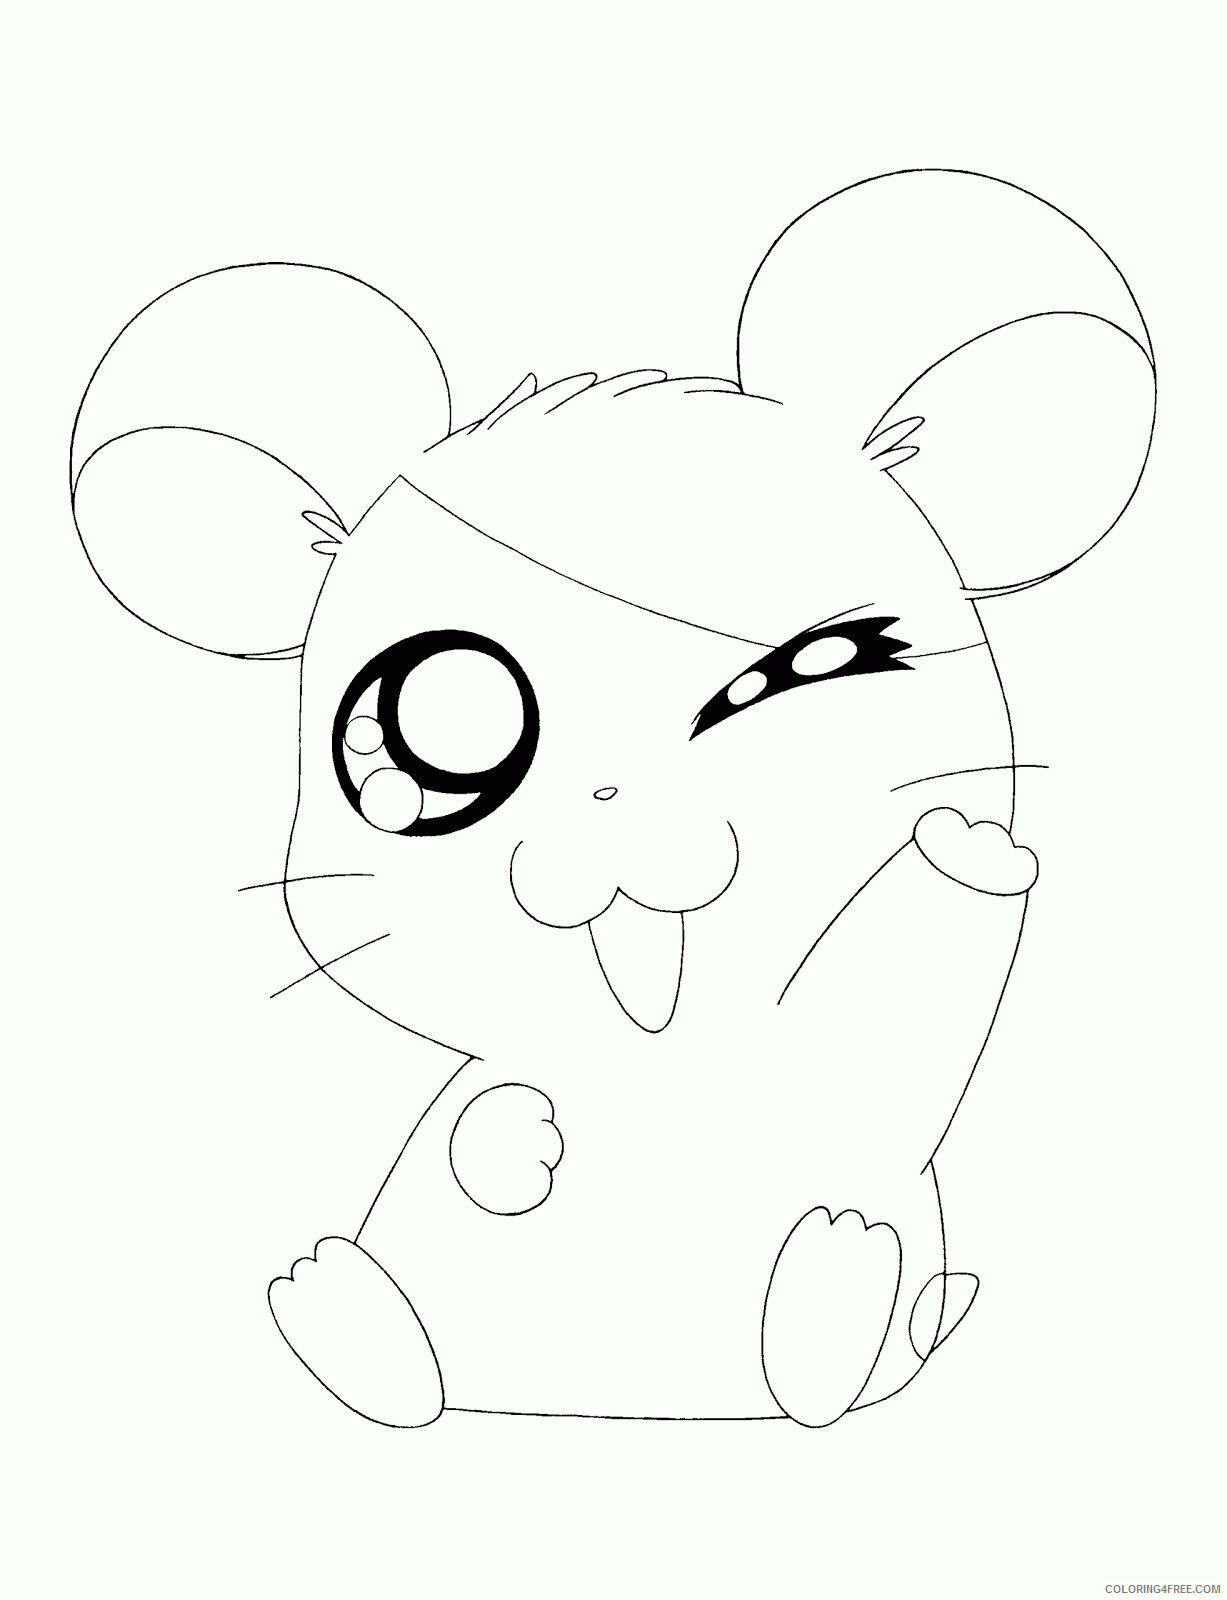 Az Hamtaro Coloring Pages Printable Sheets Cute For Girls 2021 a 4532 Coloring4free